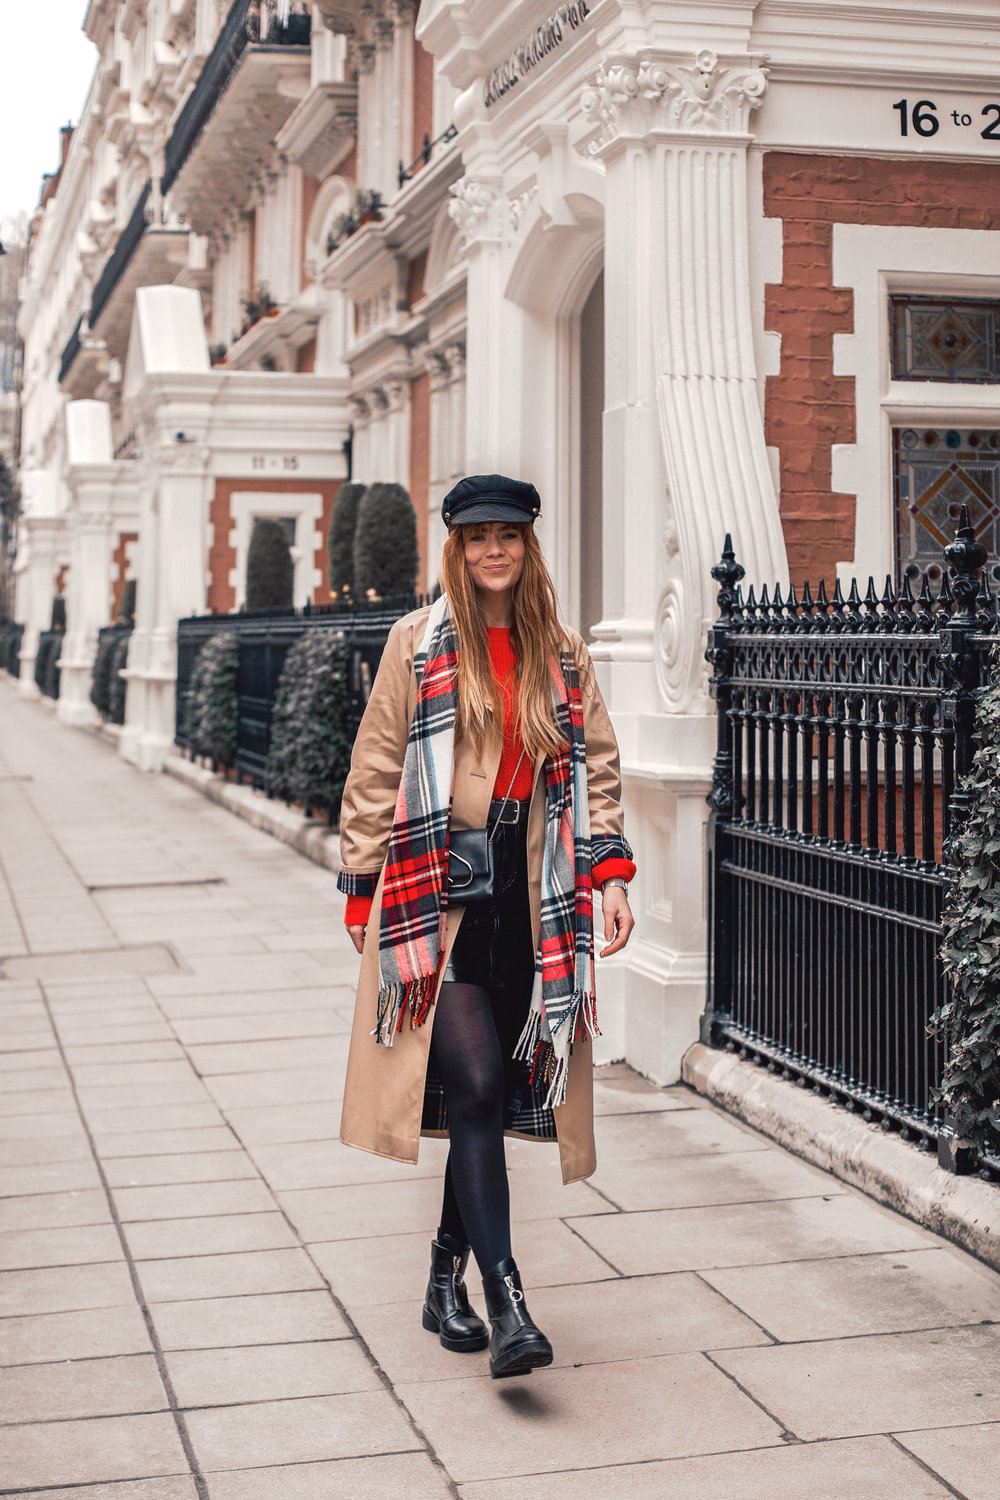 london-street-style-trench-coat-red-plaid_4.jpg